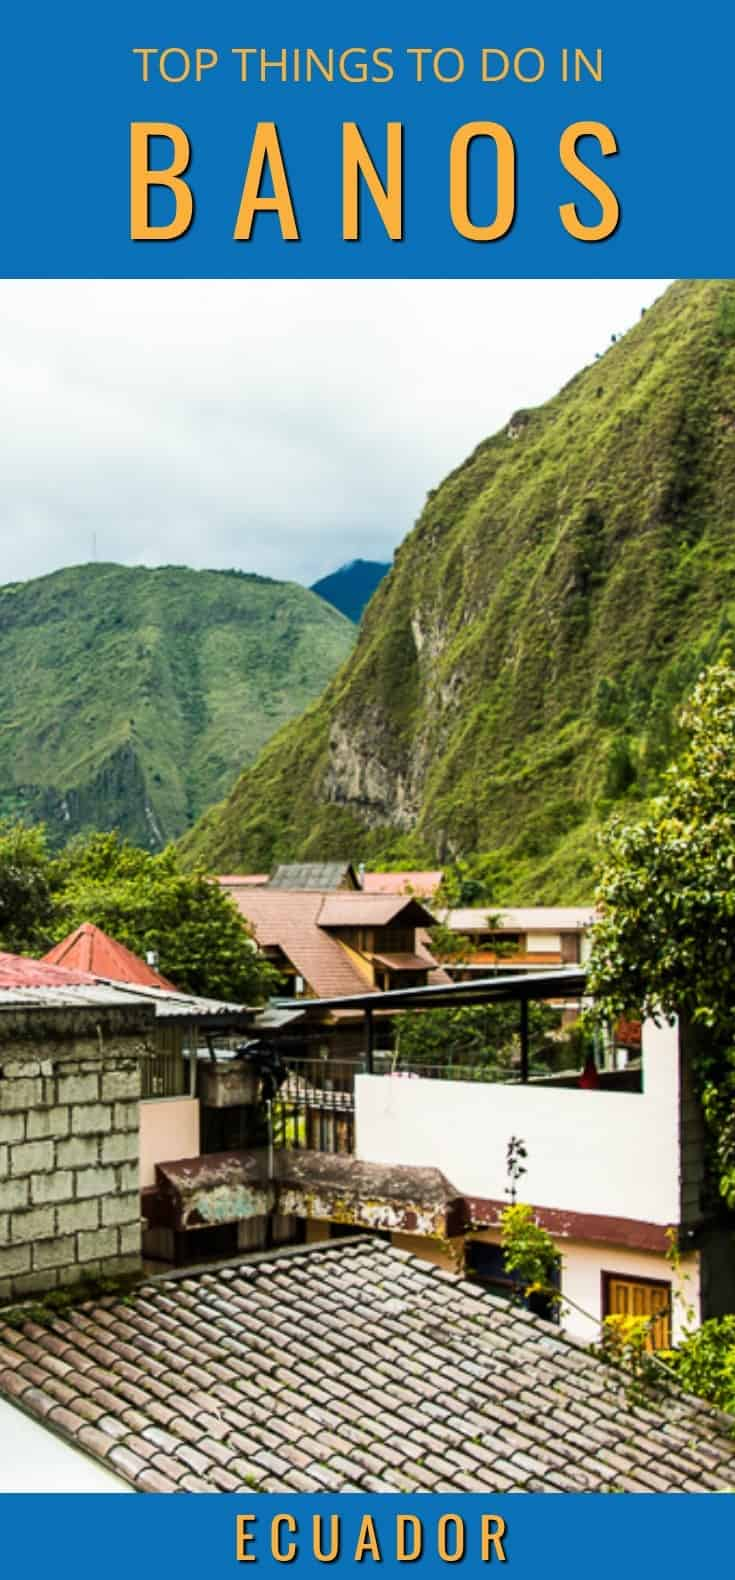 From extreme adventure to natural thermal baths, an essential guide to all the things to do in Banos, Ecuador.